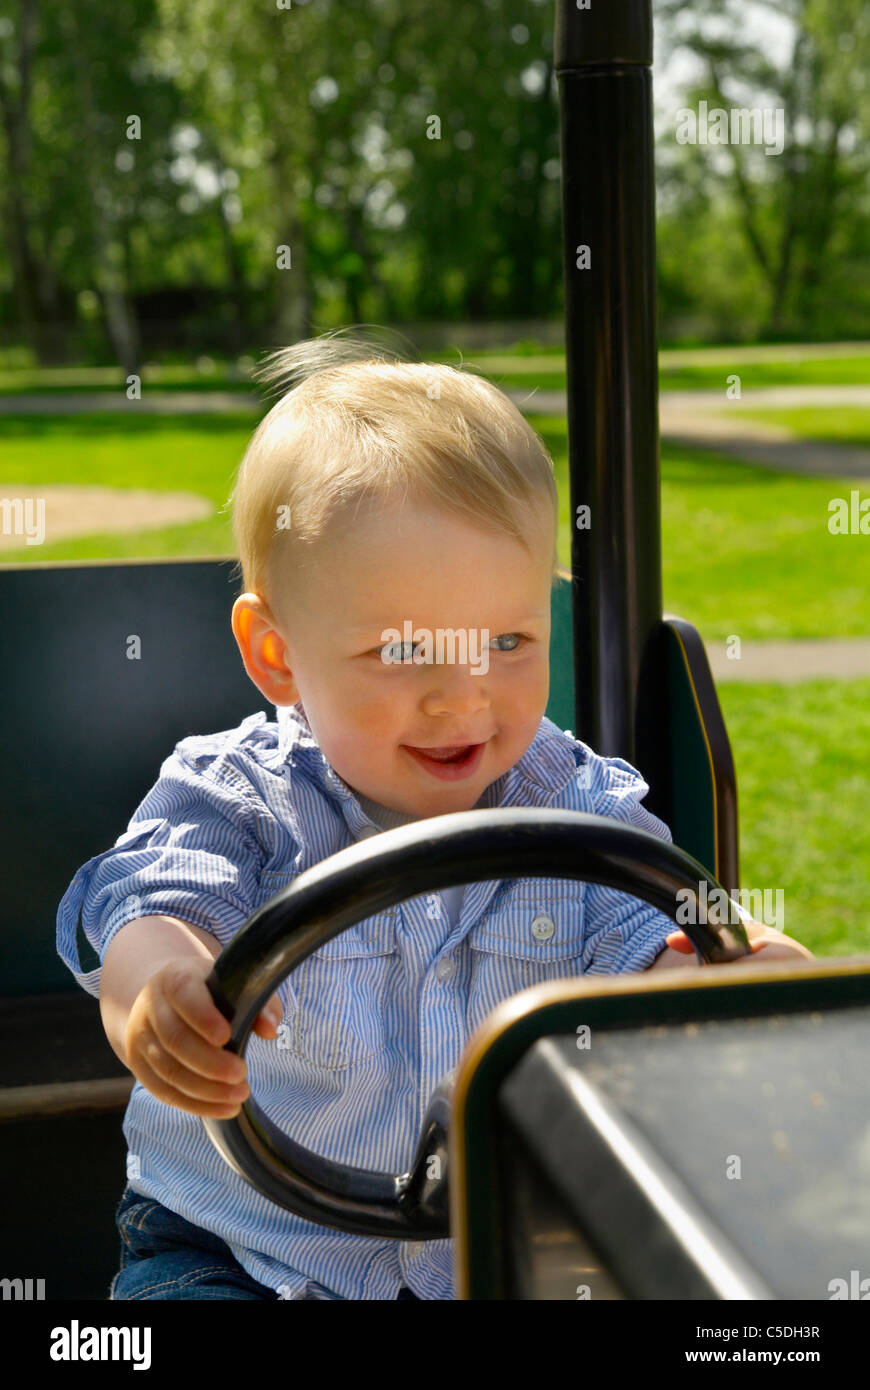 Cute little boy driving cropped petite voiture dans l'aire de jeux Photo Stock